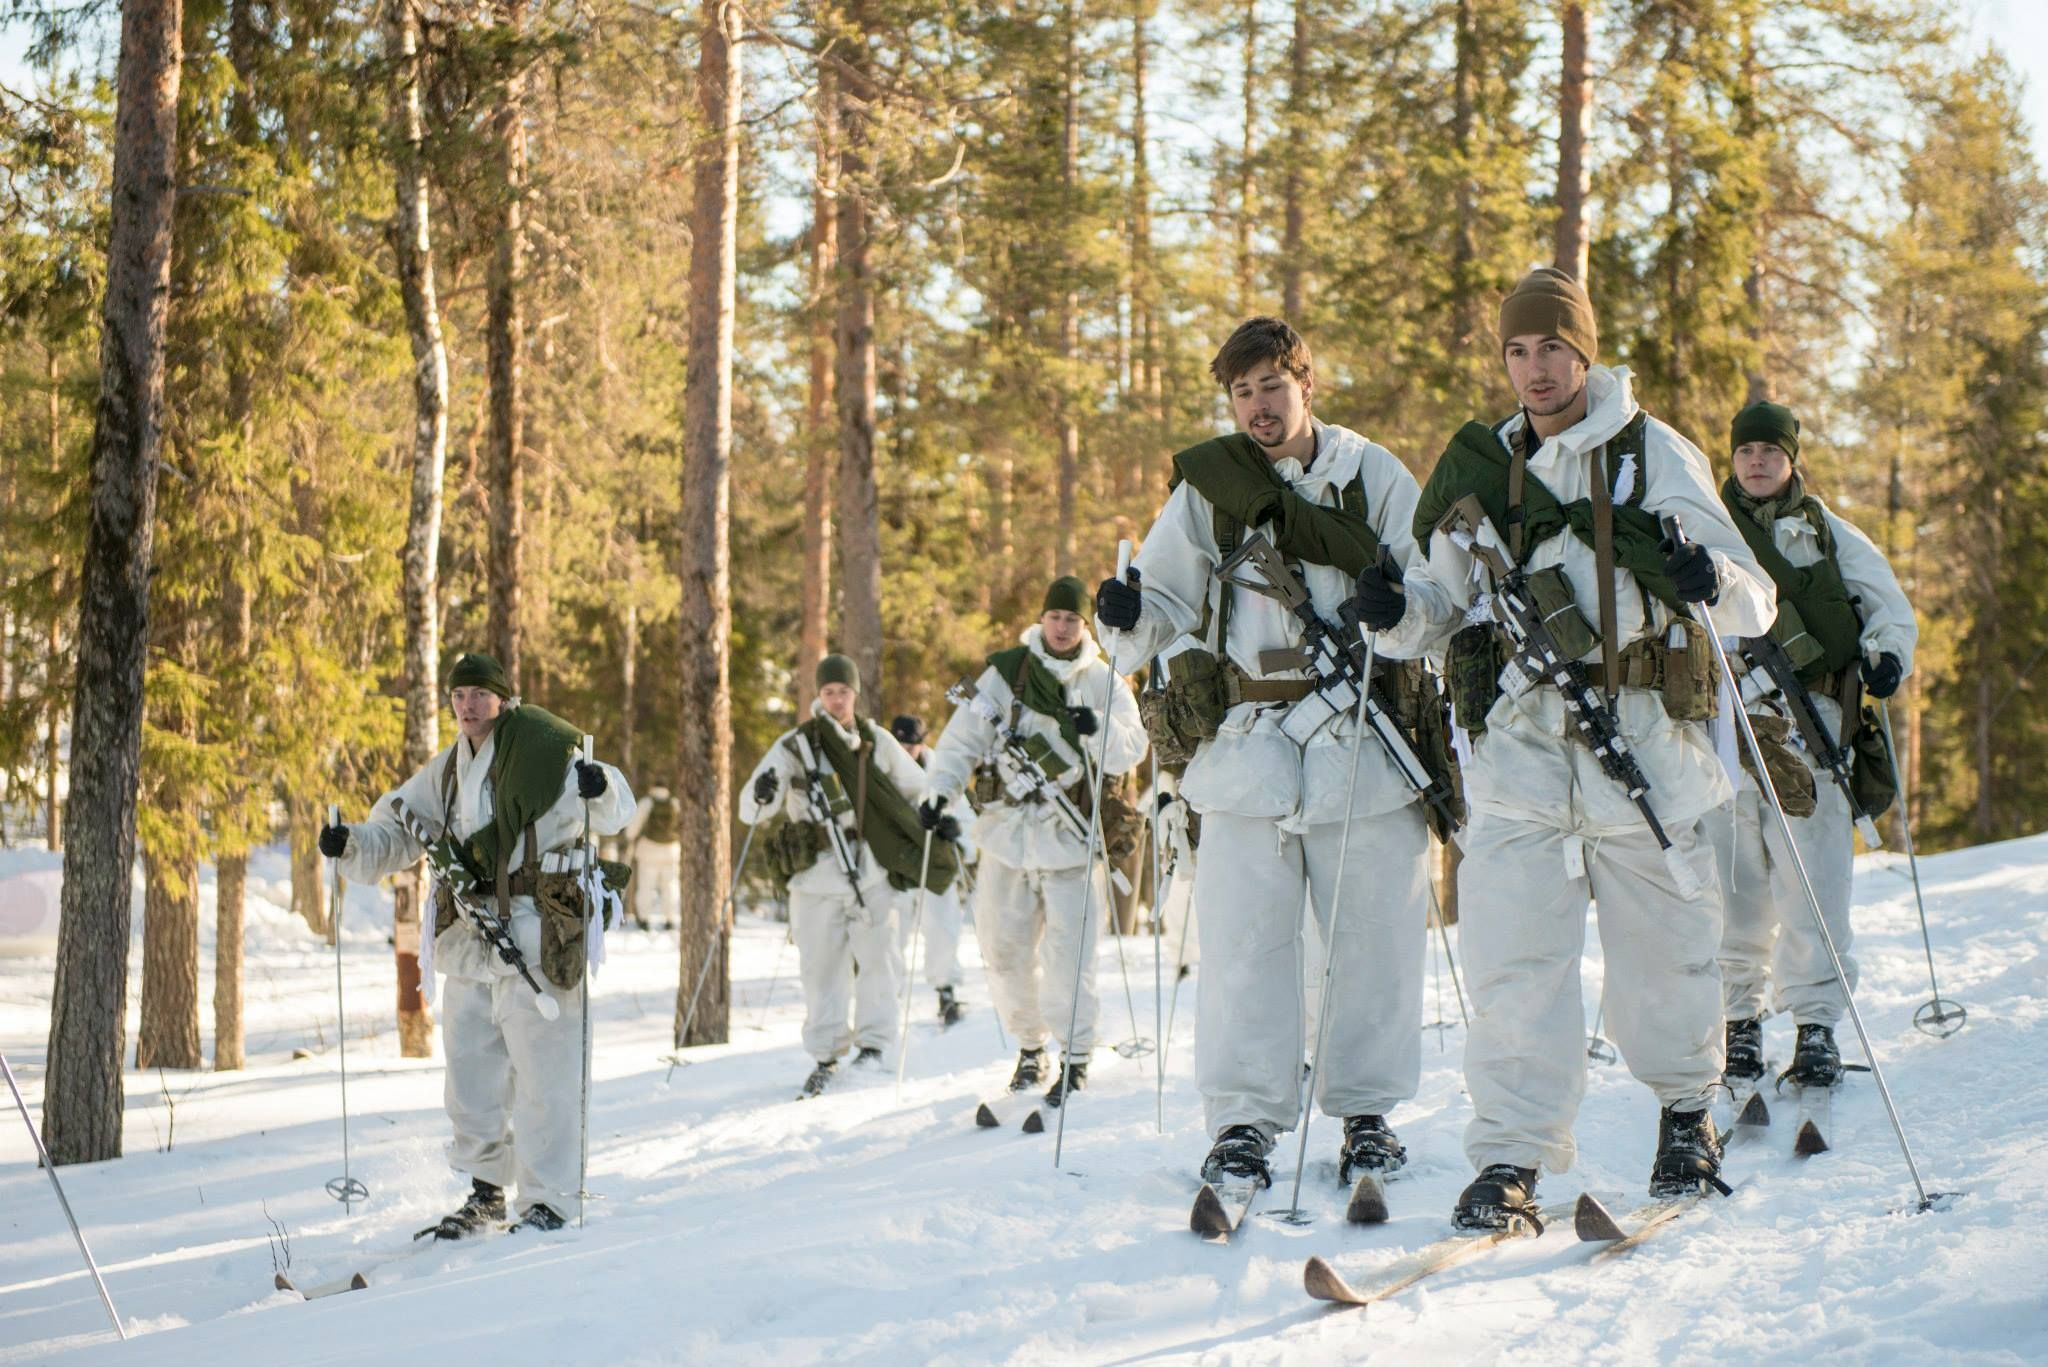 Danish soldiers on ongoing winter exercises near boden for Boden sweden